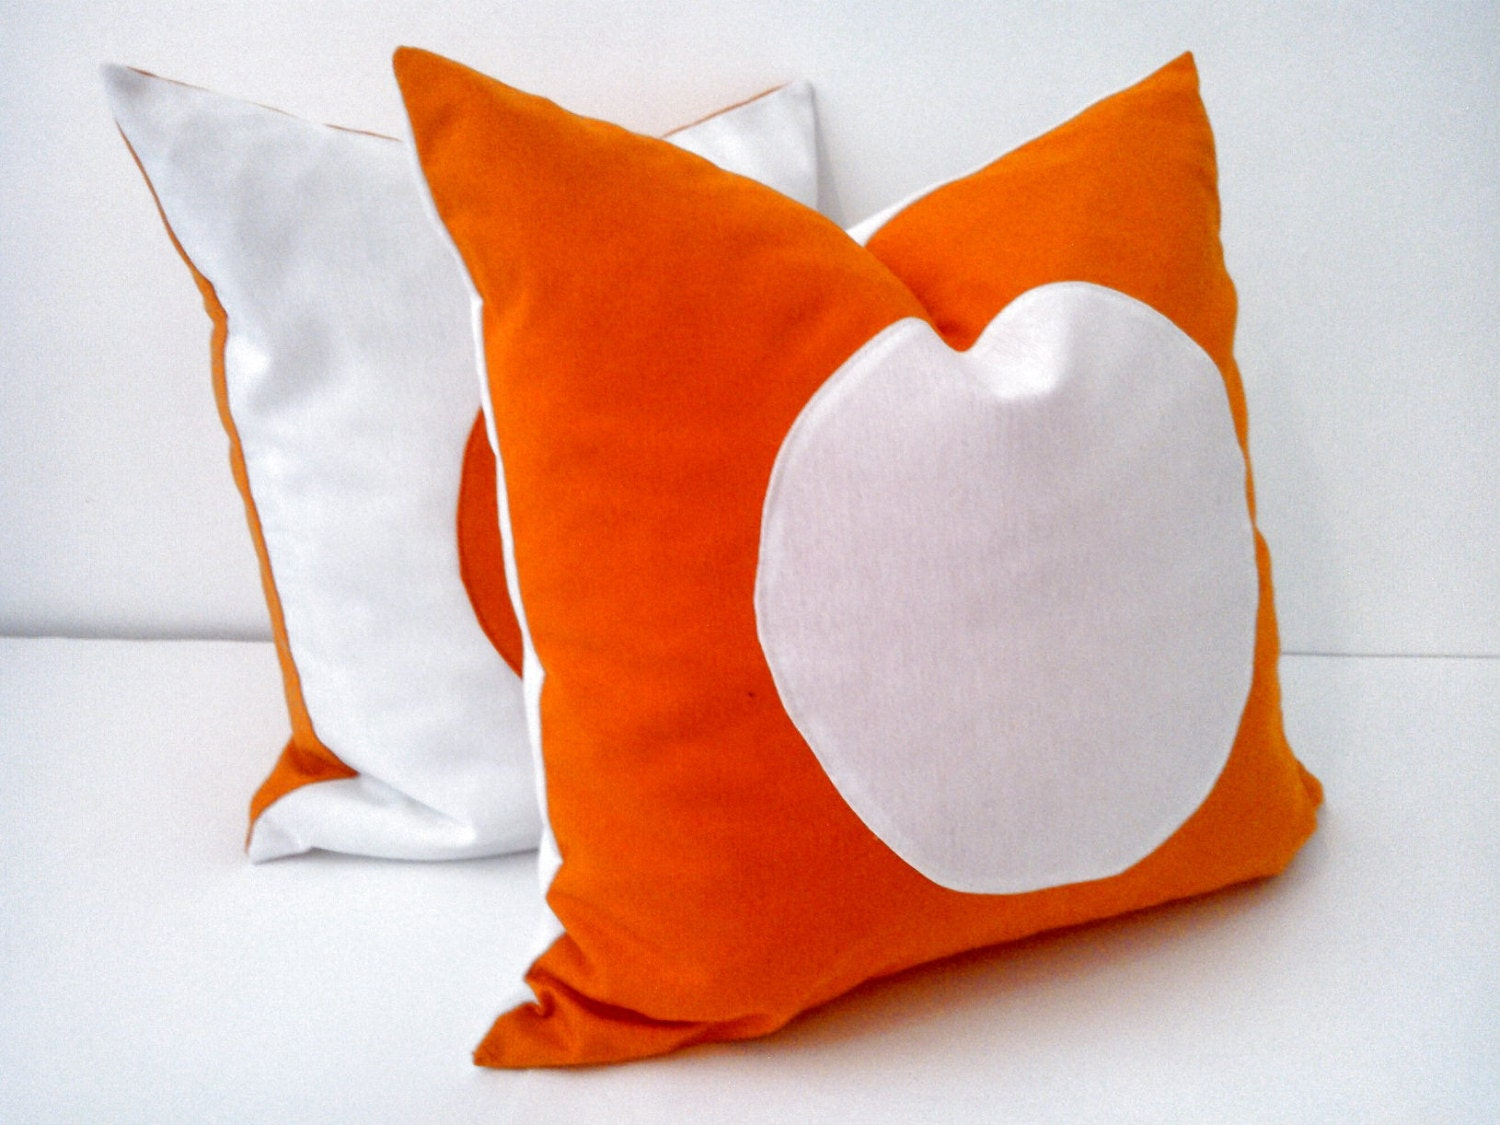 Orange Throw Pillow Cover With White Circle, Geometric White and Orange Cushion. Free Shipping